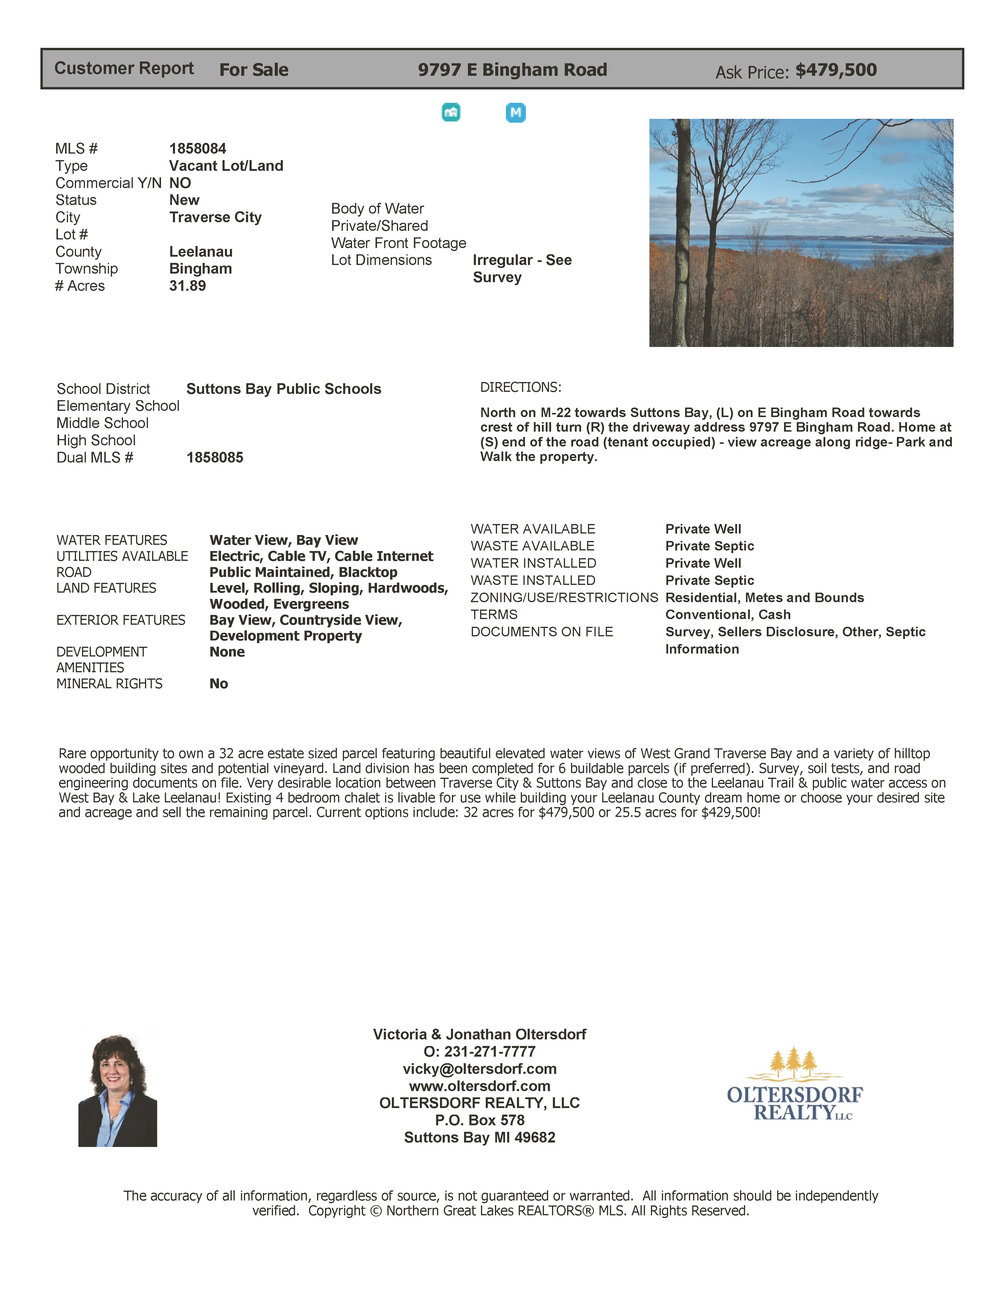 9797 E Bingham Road, Traverse City - Water View Vacant Land For Sale by Oltersdorf Realty 2019 (1).jpg